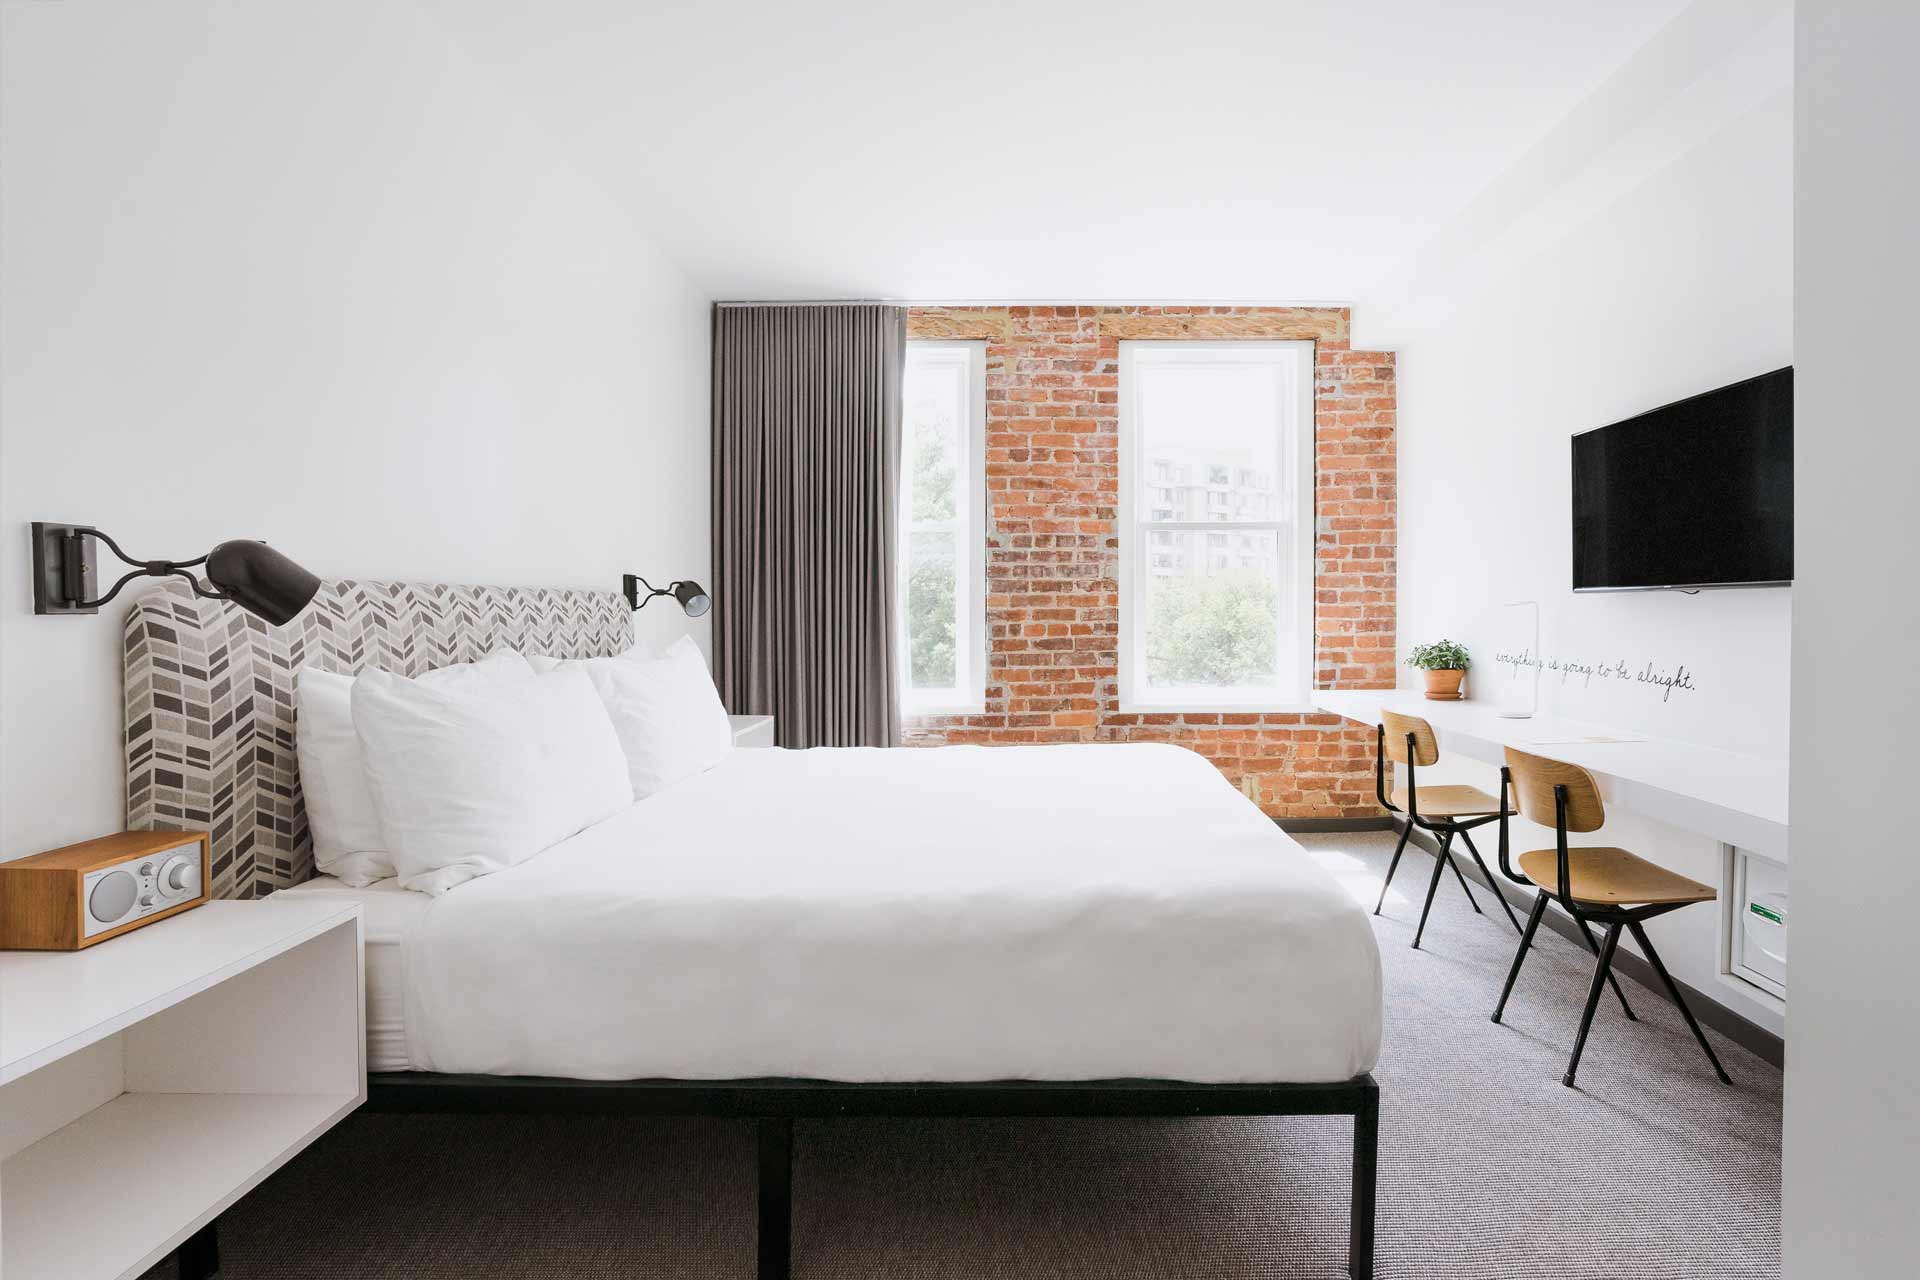 guest room with king bed and desk